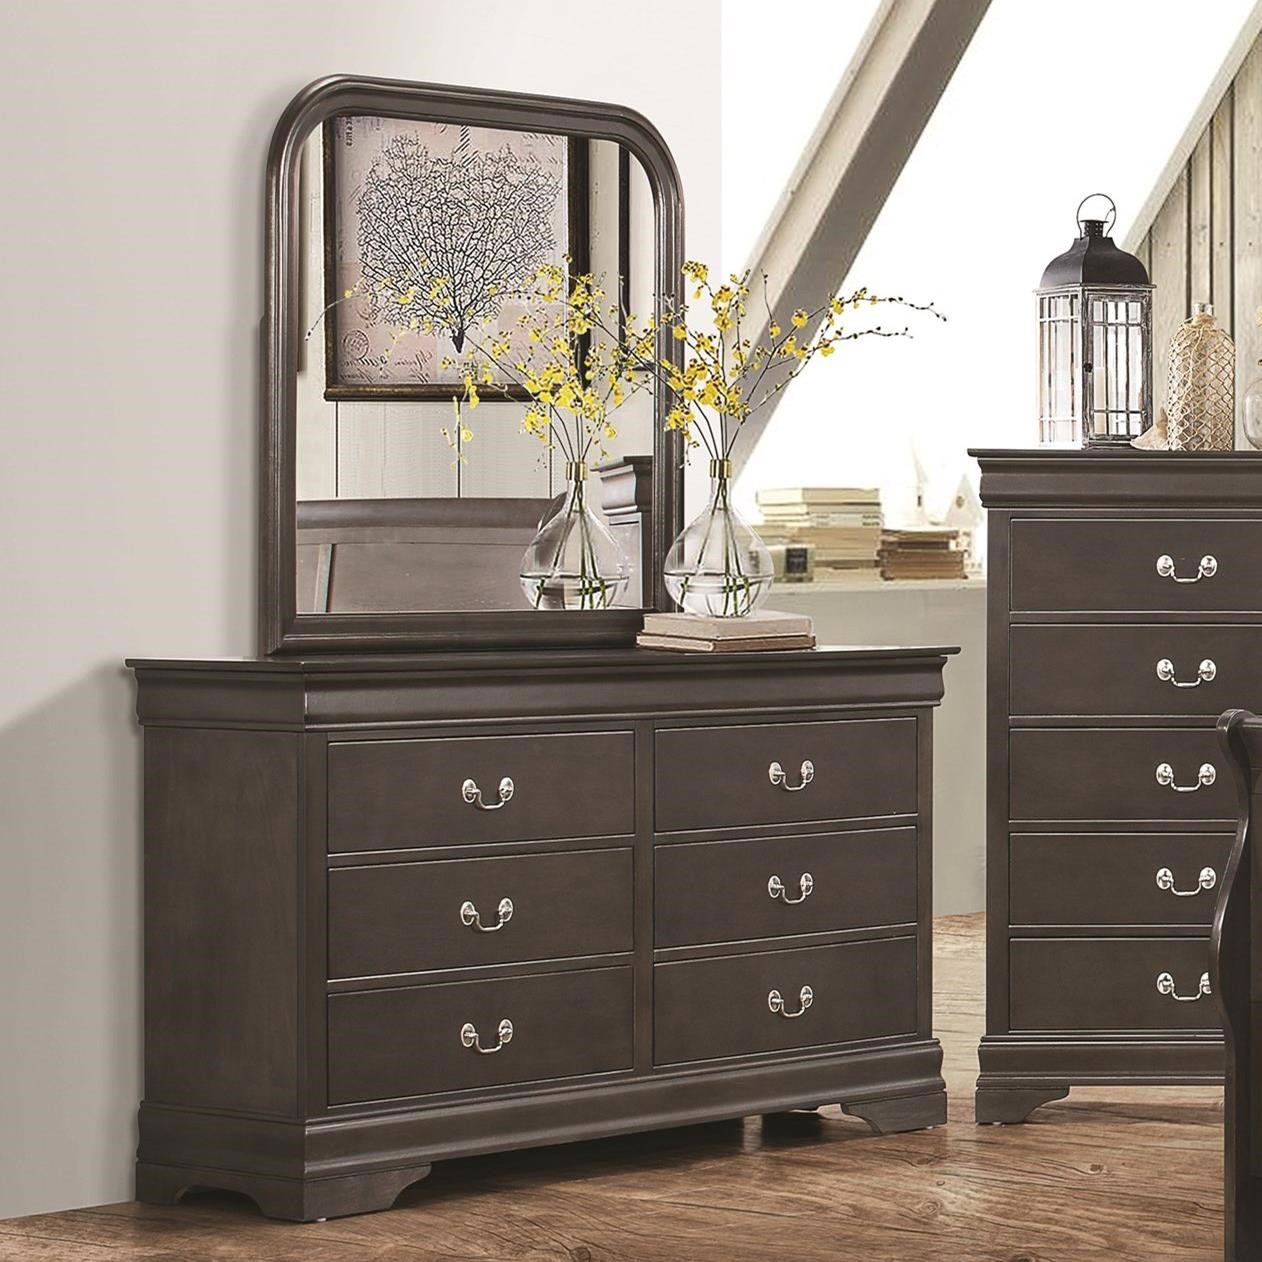 Coaster Hershel Louis Philippe Dresser And Mirror Combination Item Number 201933 201934